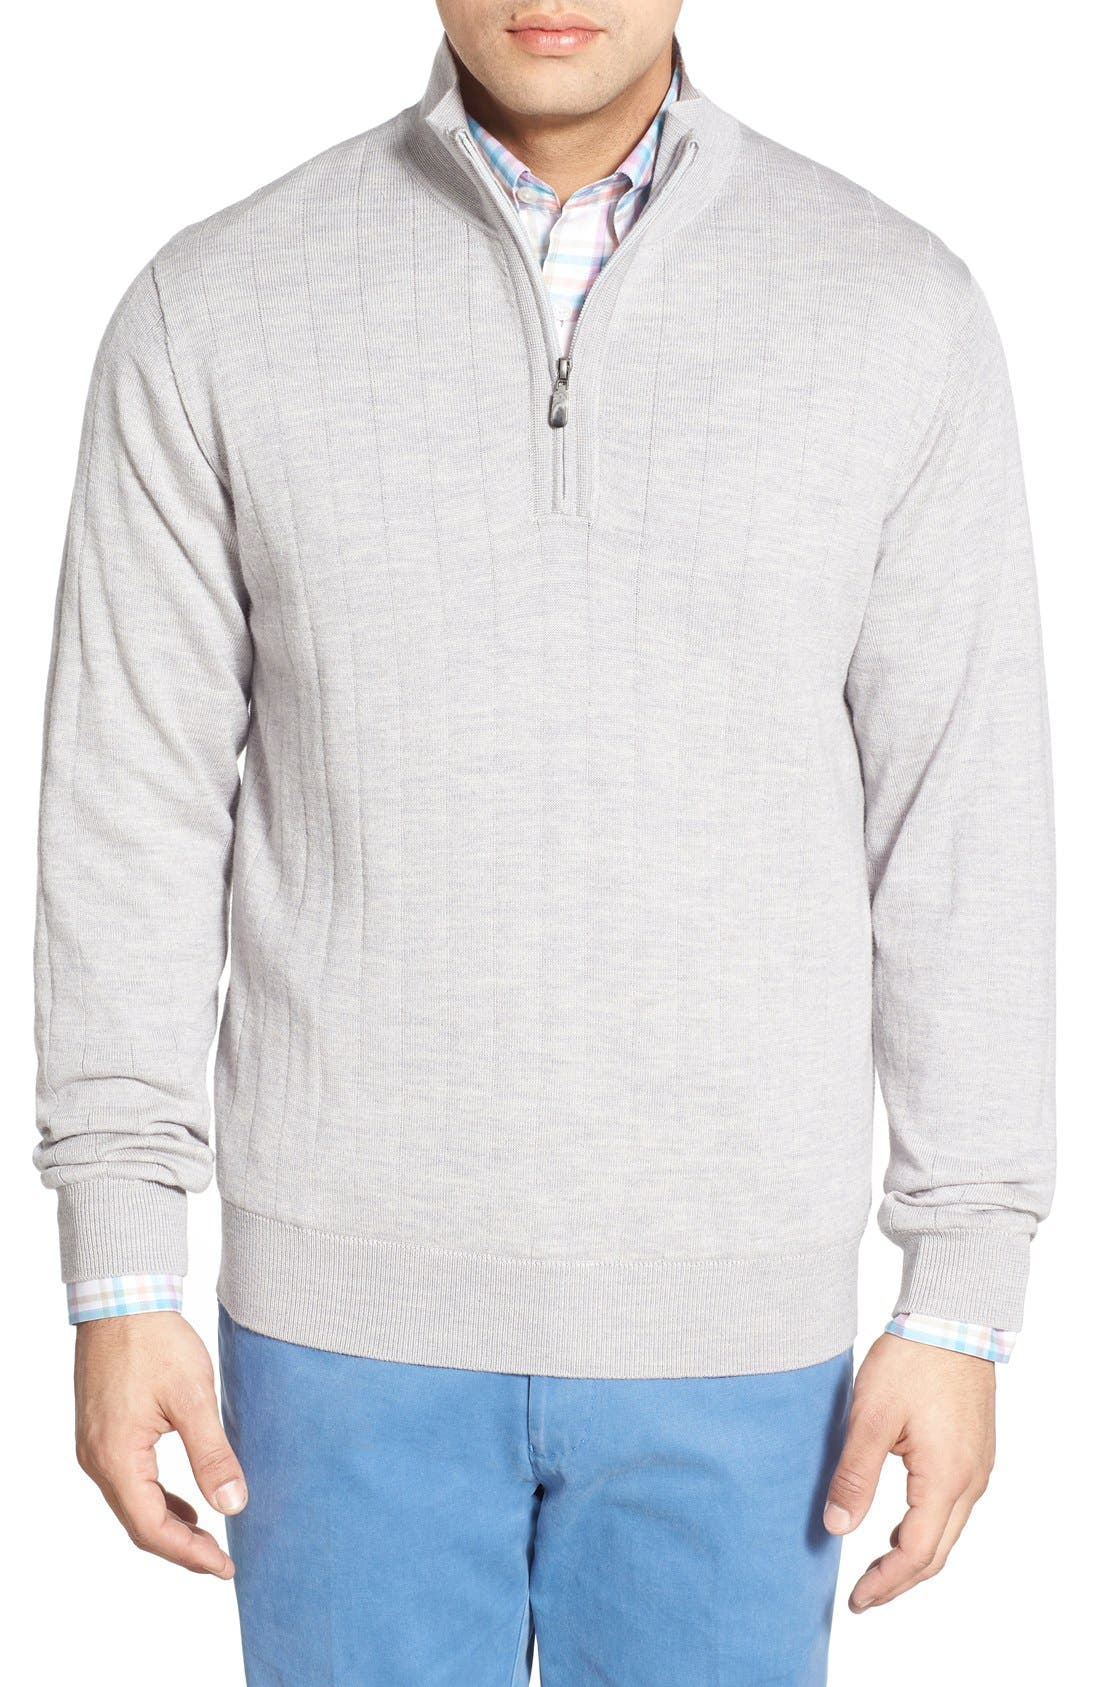 Windproof Merino Wool Quarter Zip Sweater,                             Main thumbnail 1, color,                             HEATHER GREY